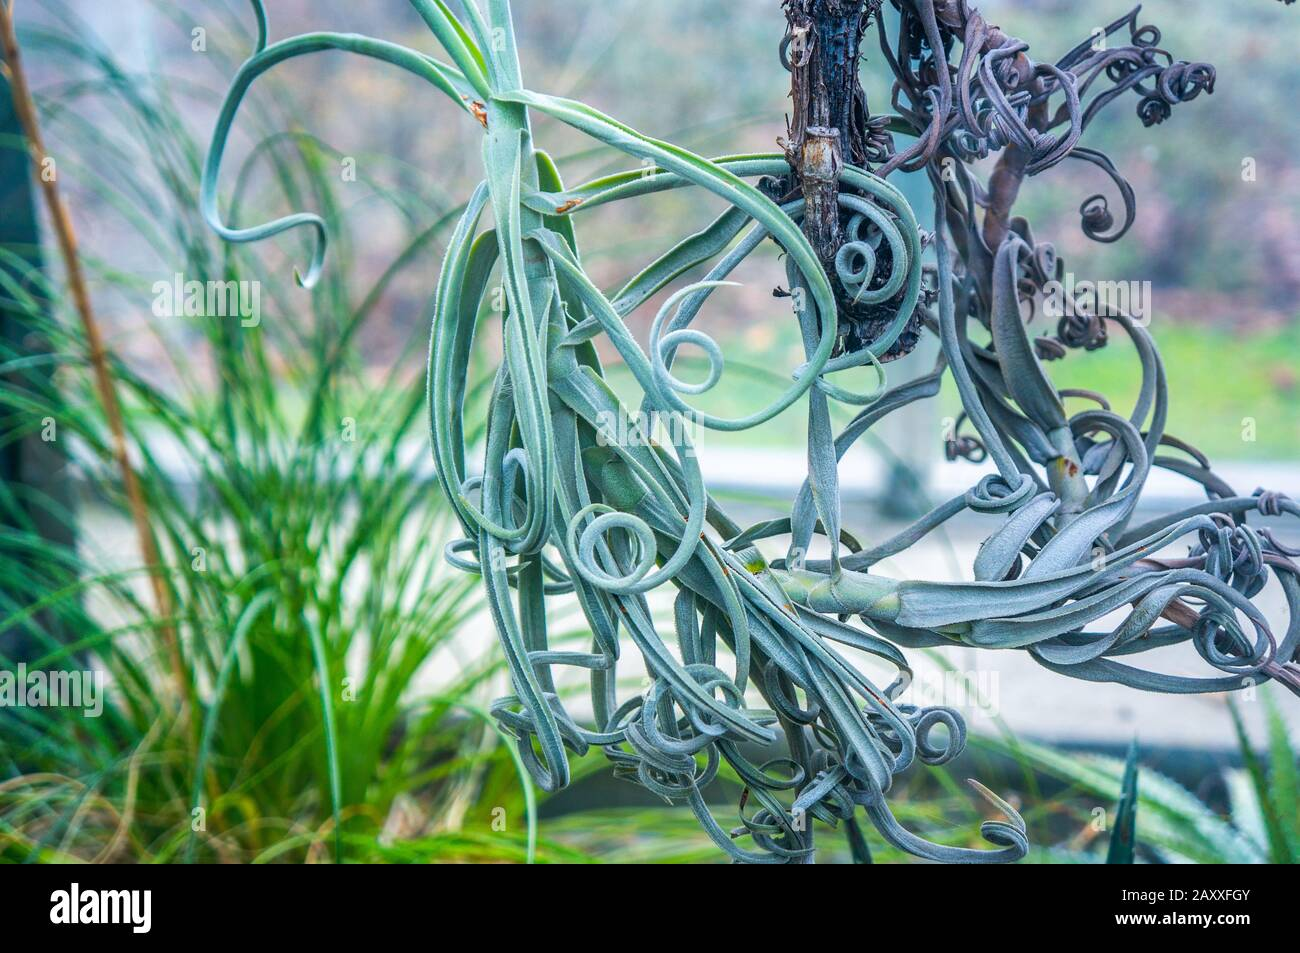 Curly Mint Green Tillandsia Duratii Rainforest Plant Hanging In